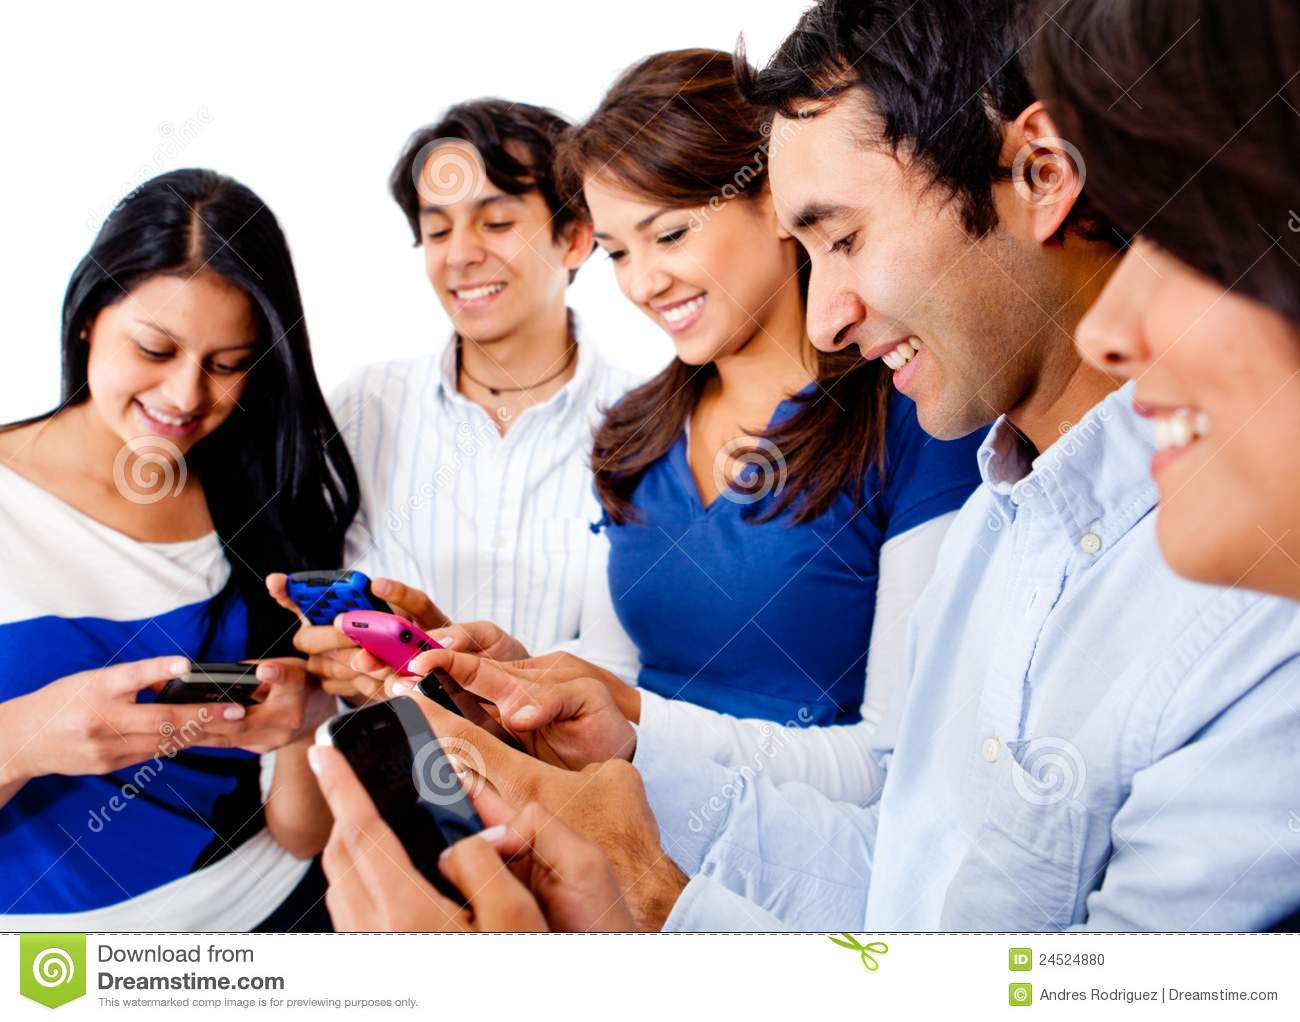 Friends text messaging stock photo. Image of phones, cell